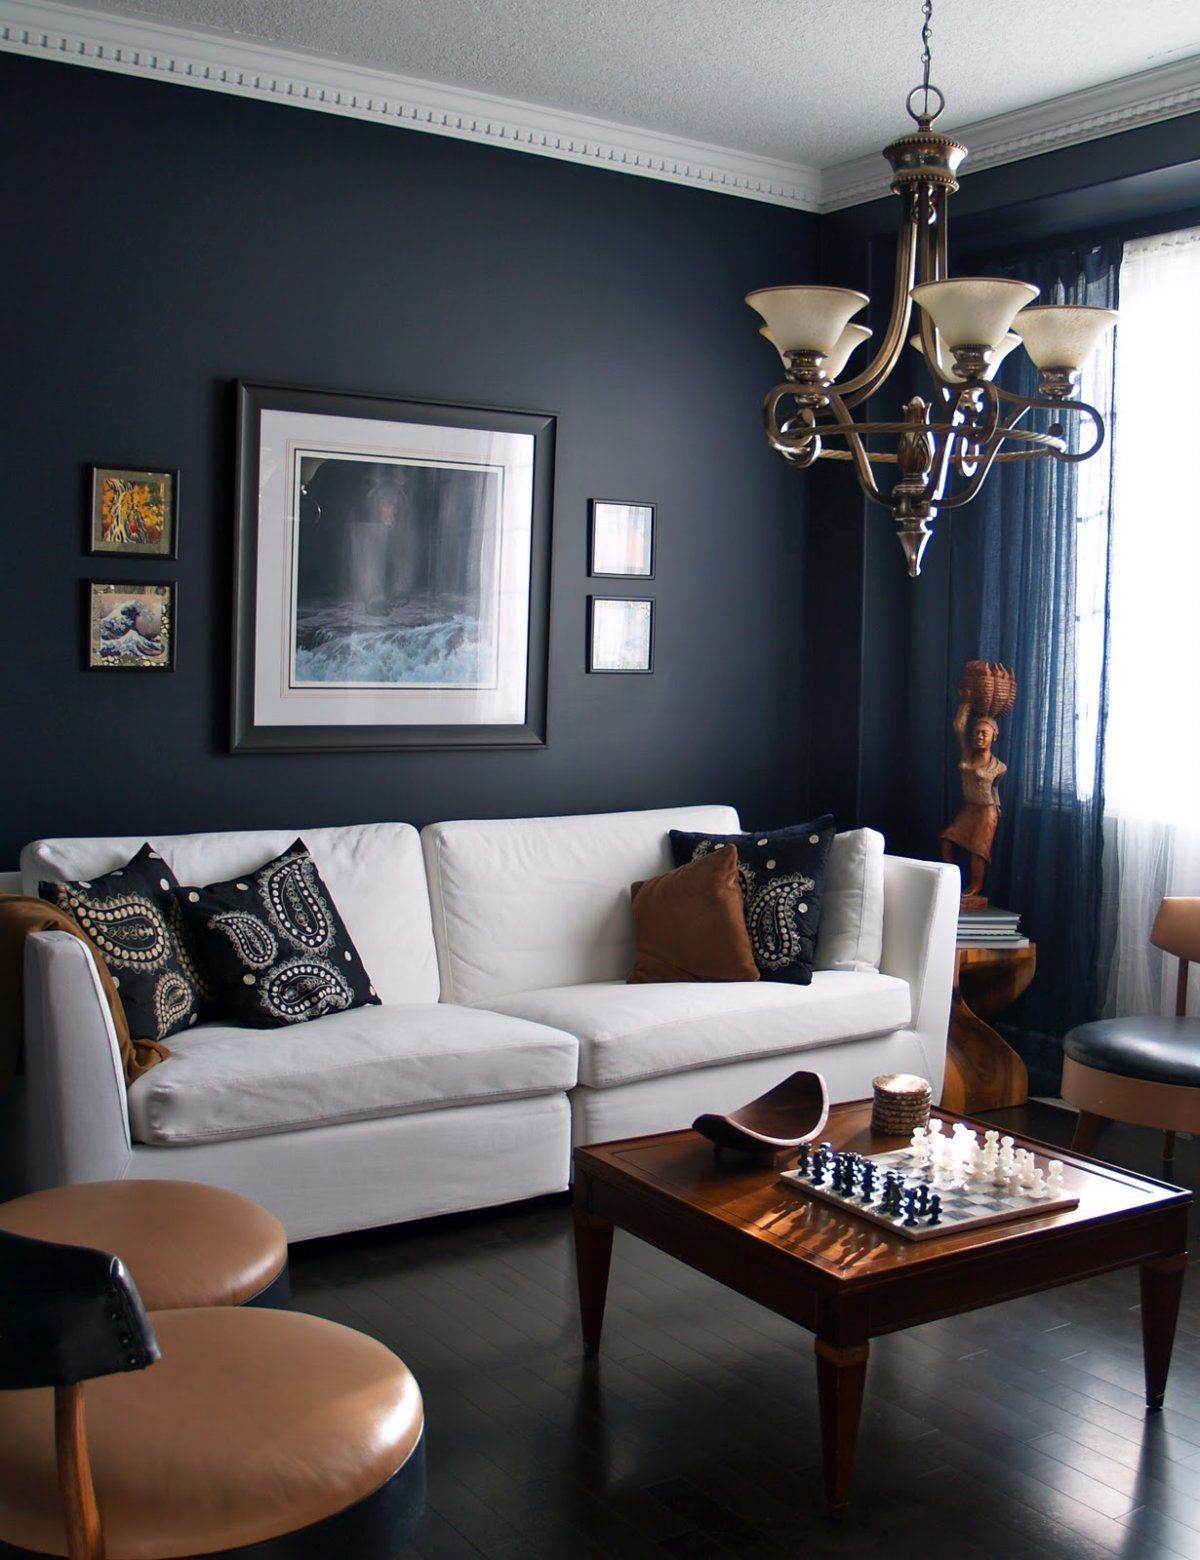 15 Beautiful Dark Blue Wall Design Ideas | Navy living rooms ...